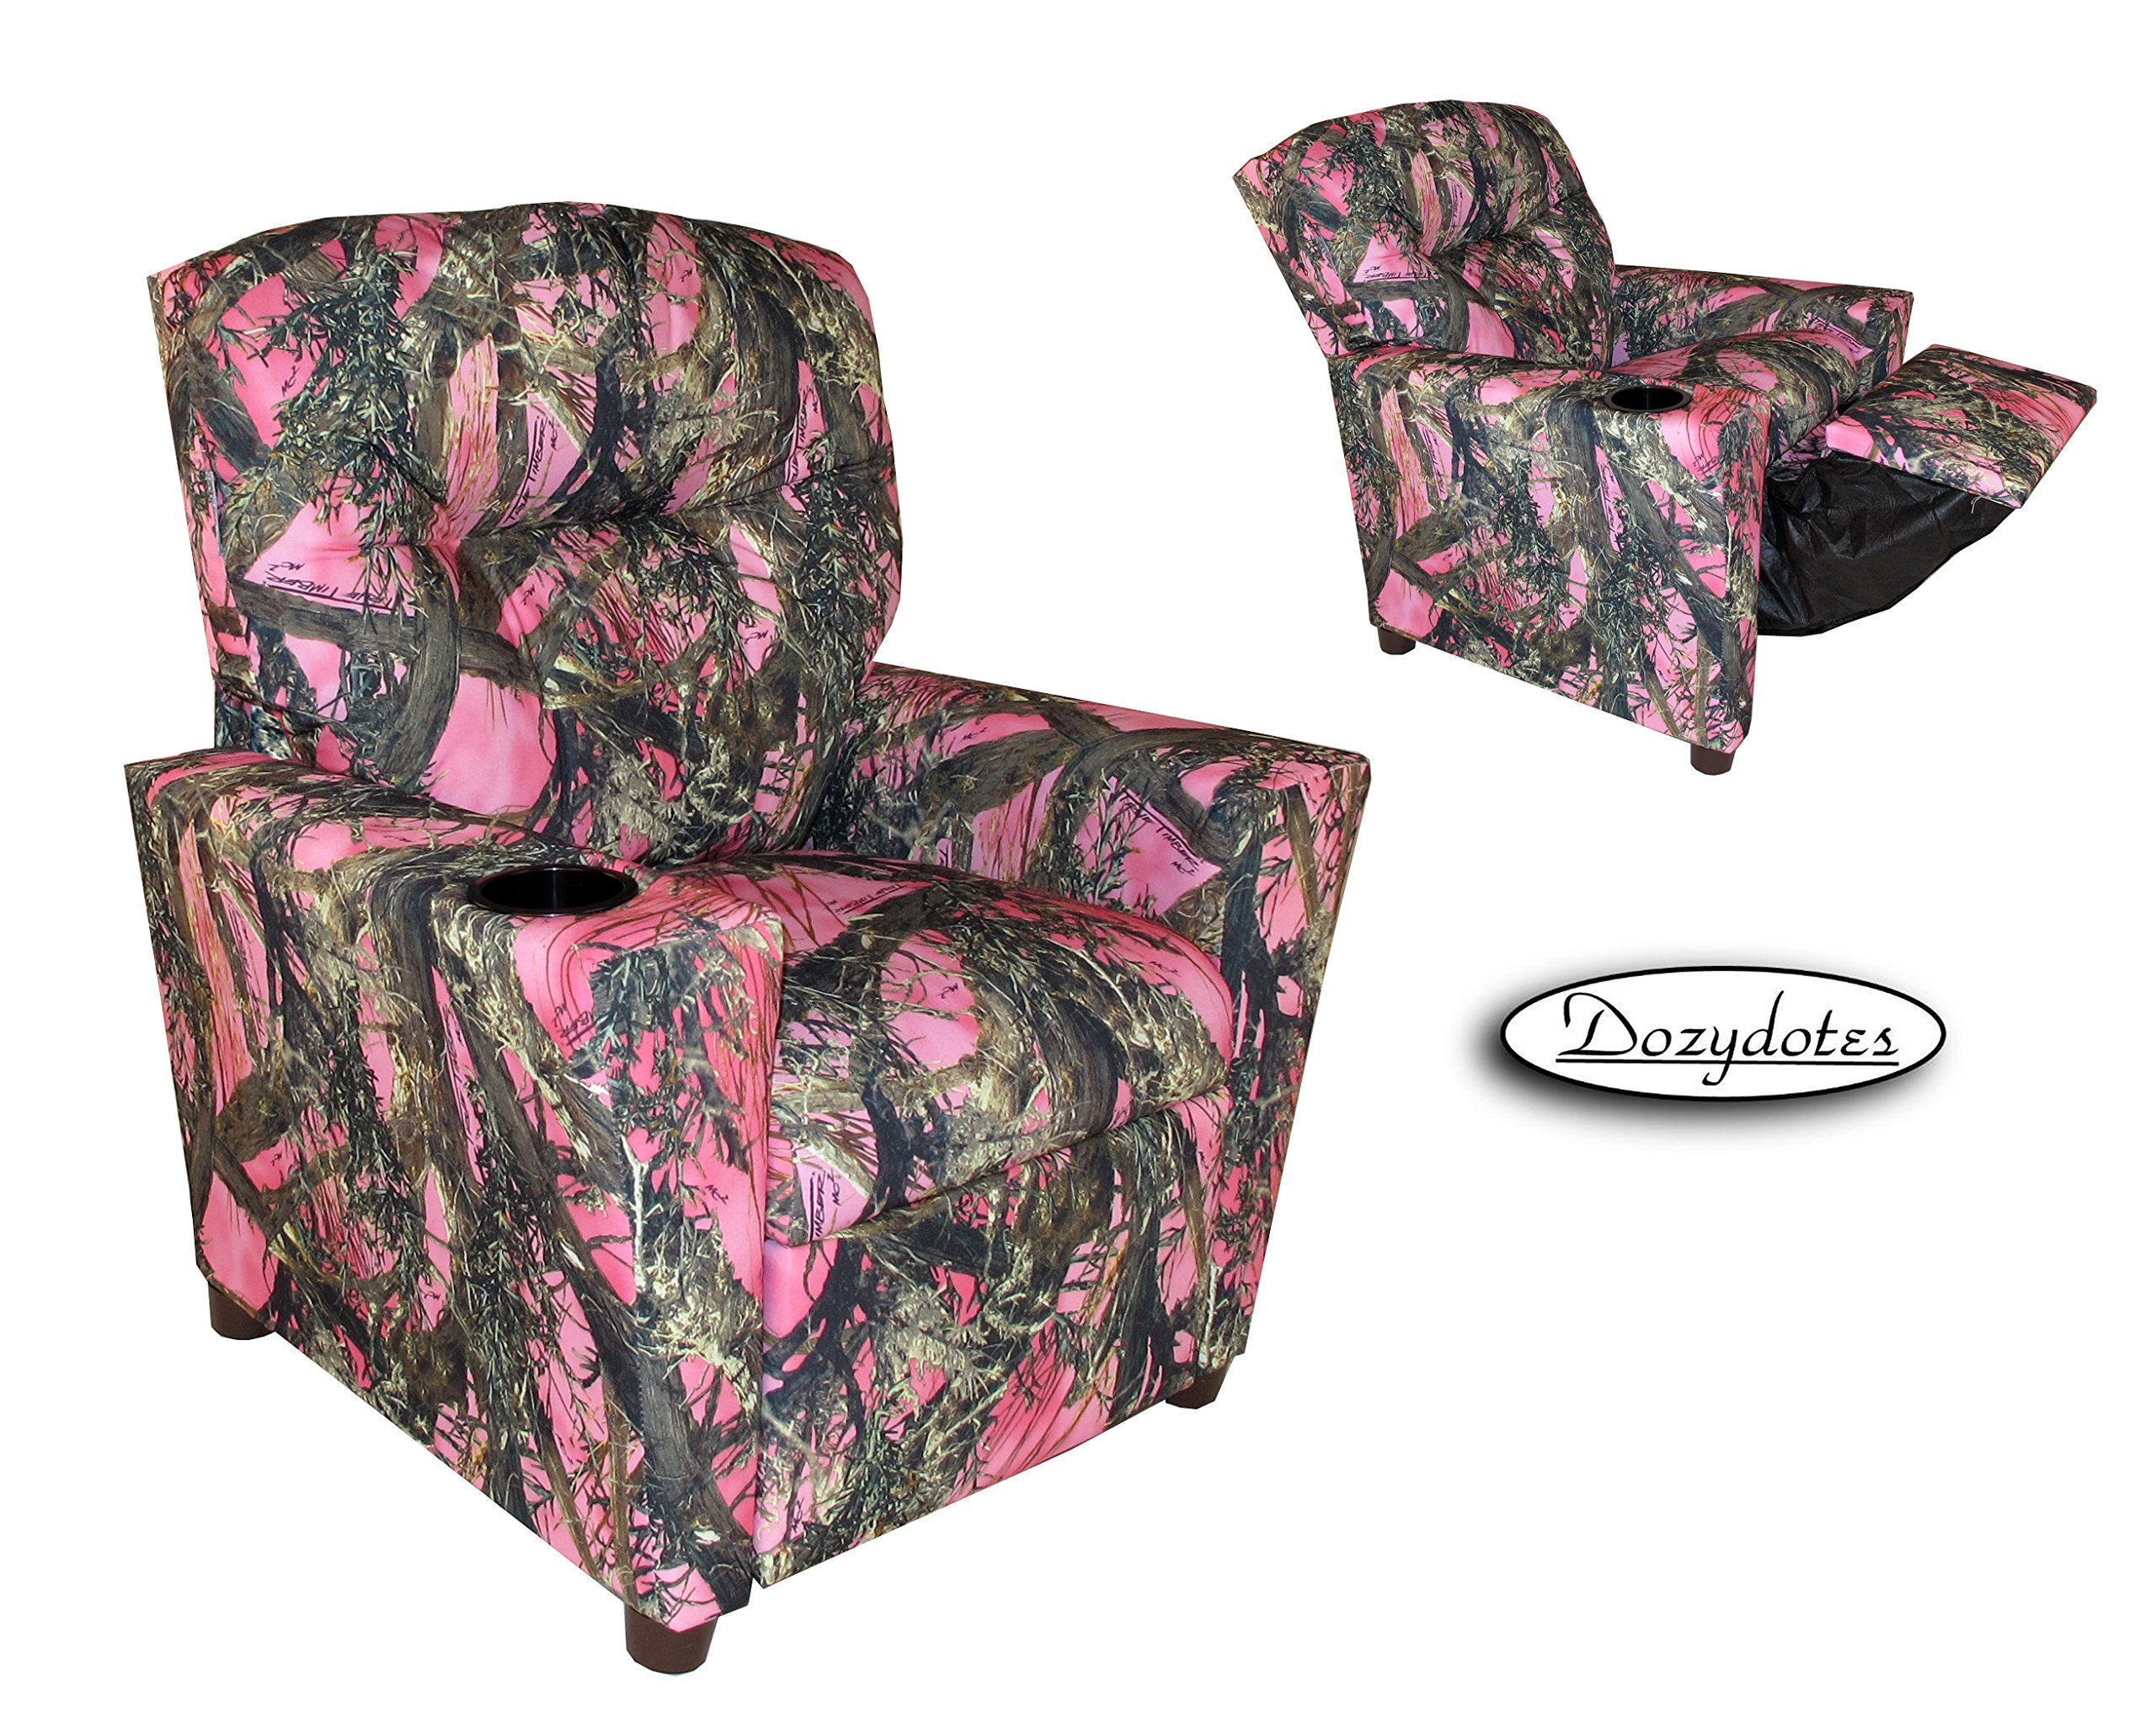 Dozydotes Cup Holder Recliner in True Timber MC2 Pink Camouflage by Dozydotes